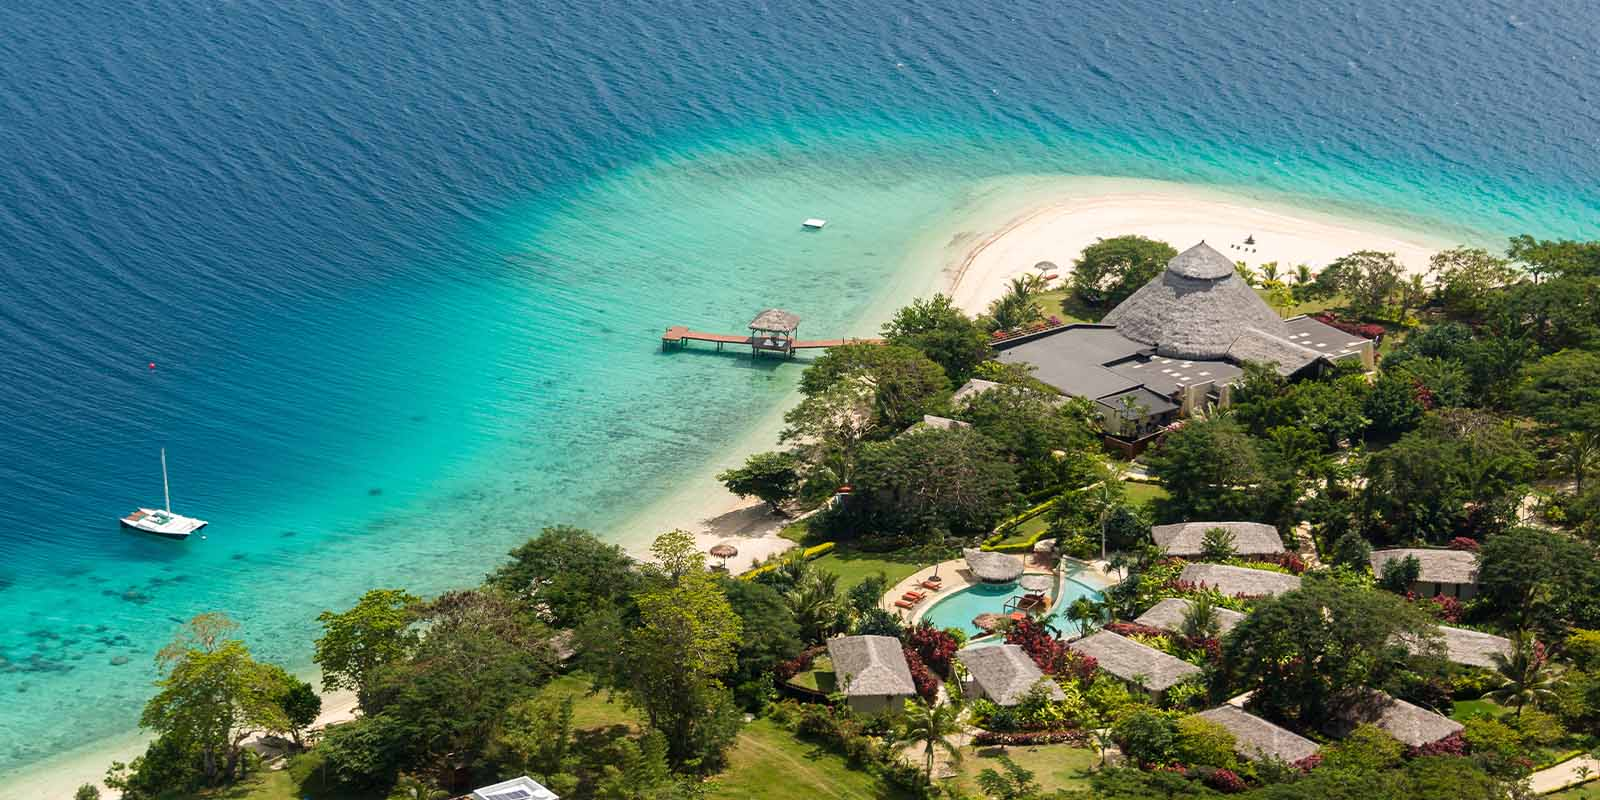 The 83 islands that make up Vanuatu are an undiscovered gem that is not frequented by many tourists